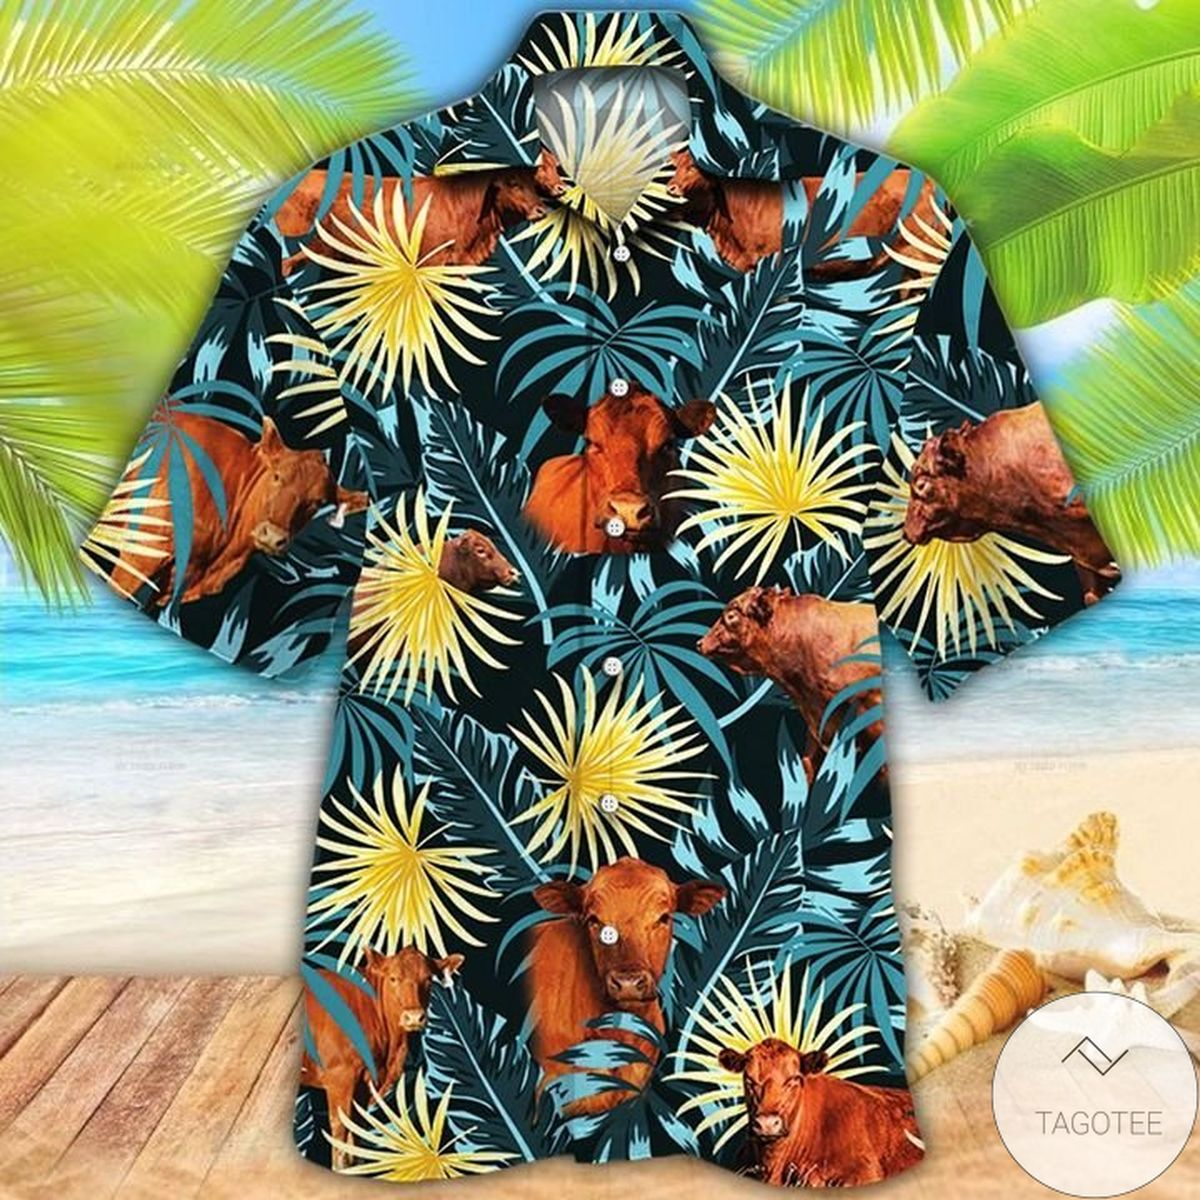 Red Angus Cattle Lovers Blue And Yellow Plants Hawaiian Shirt